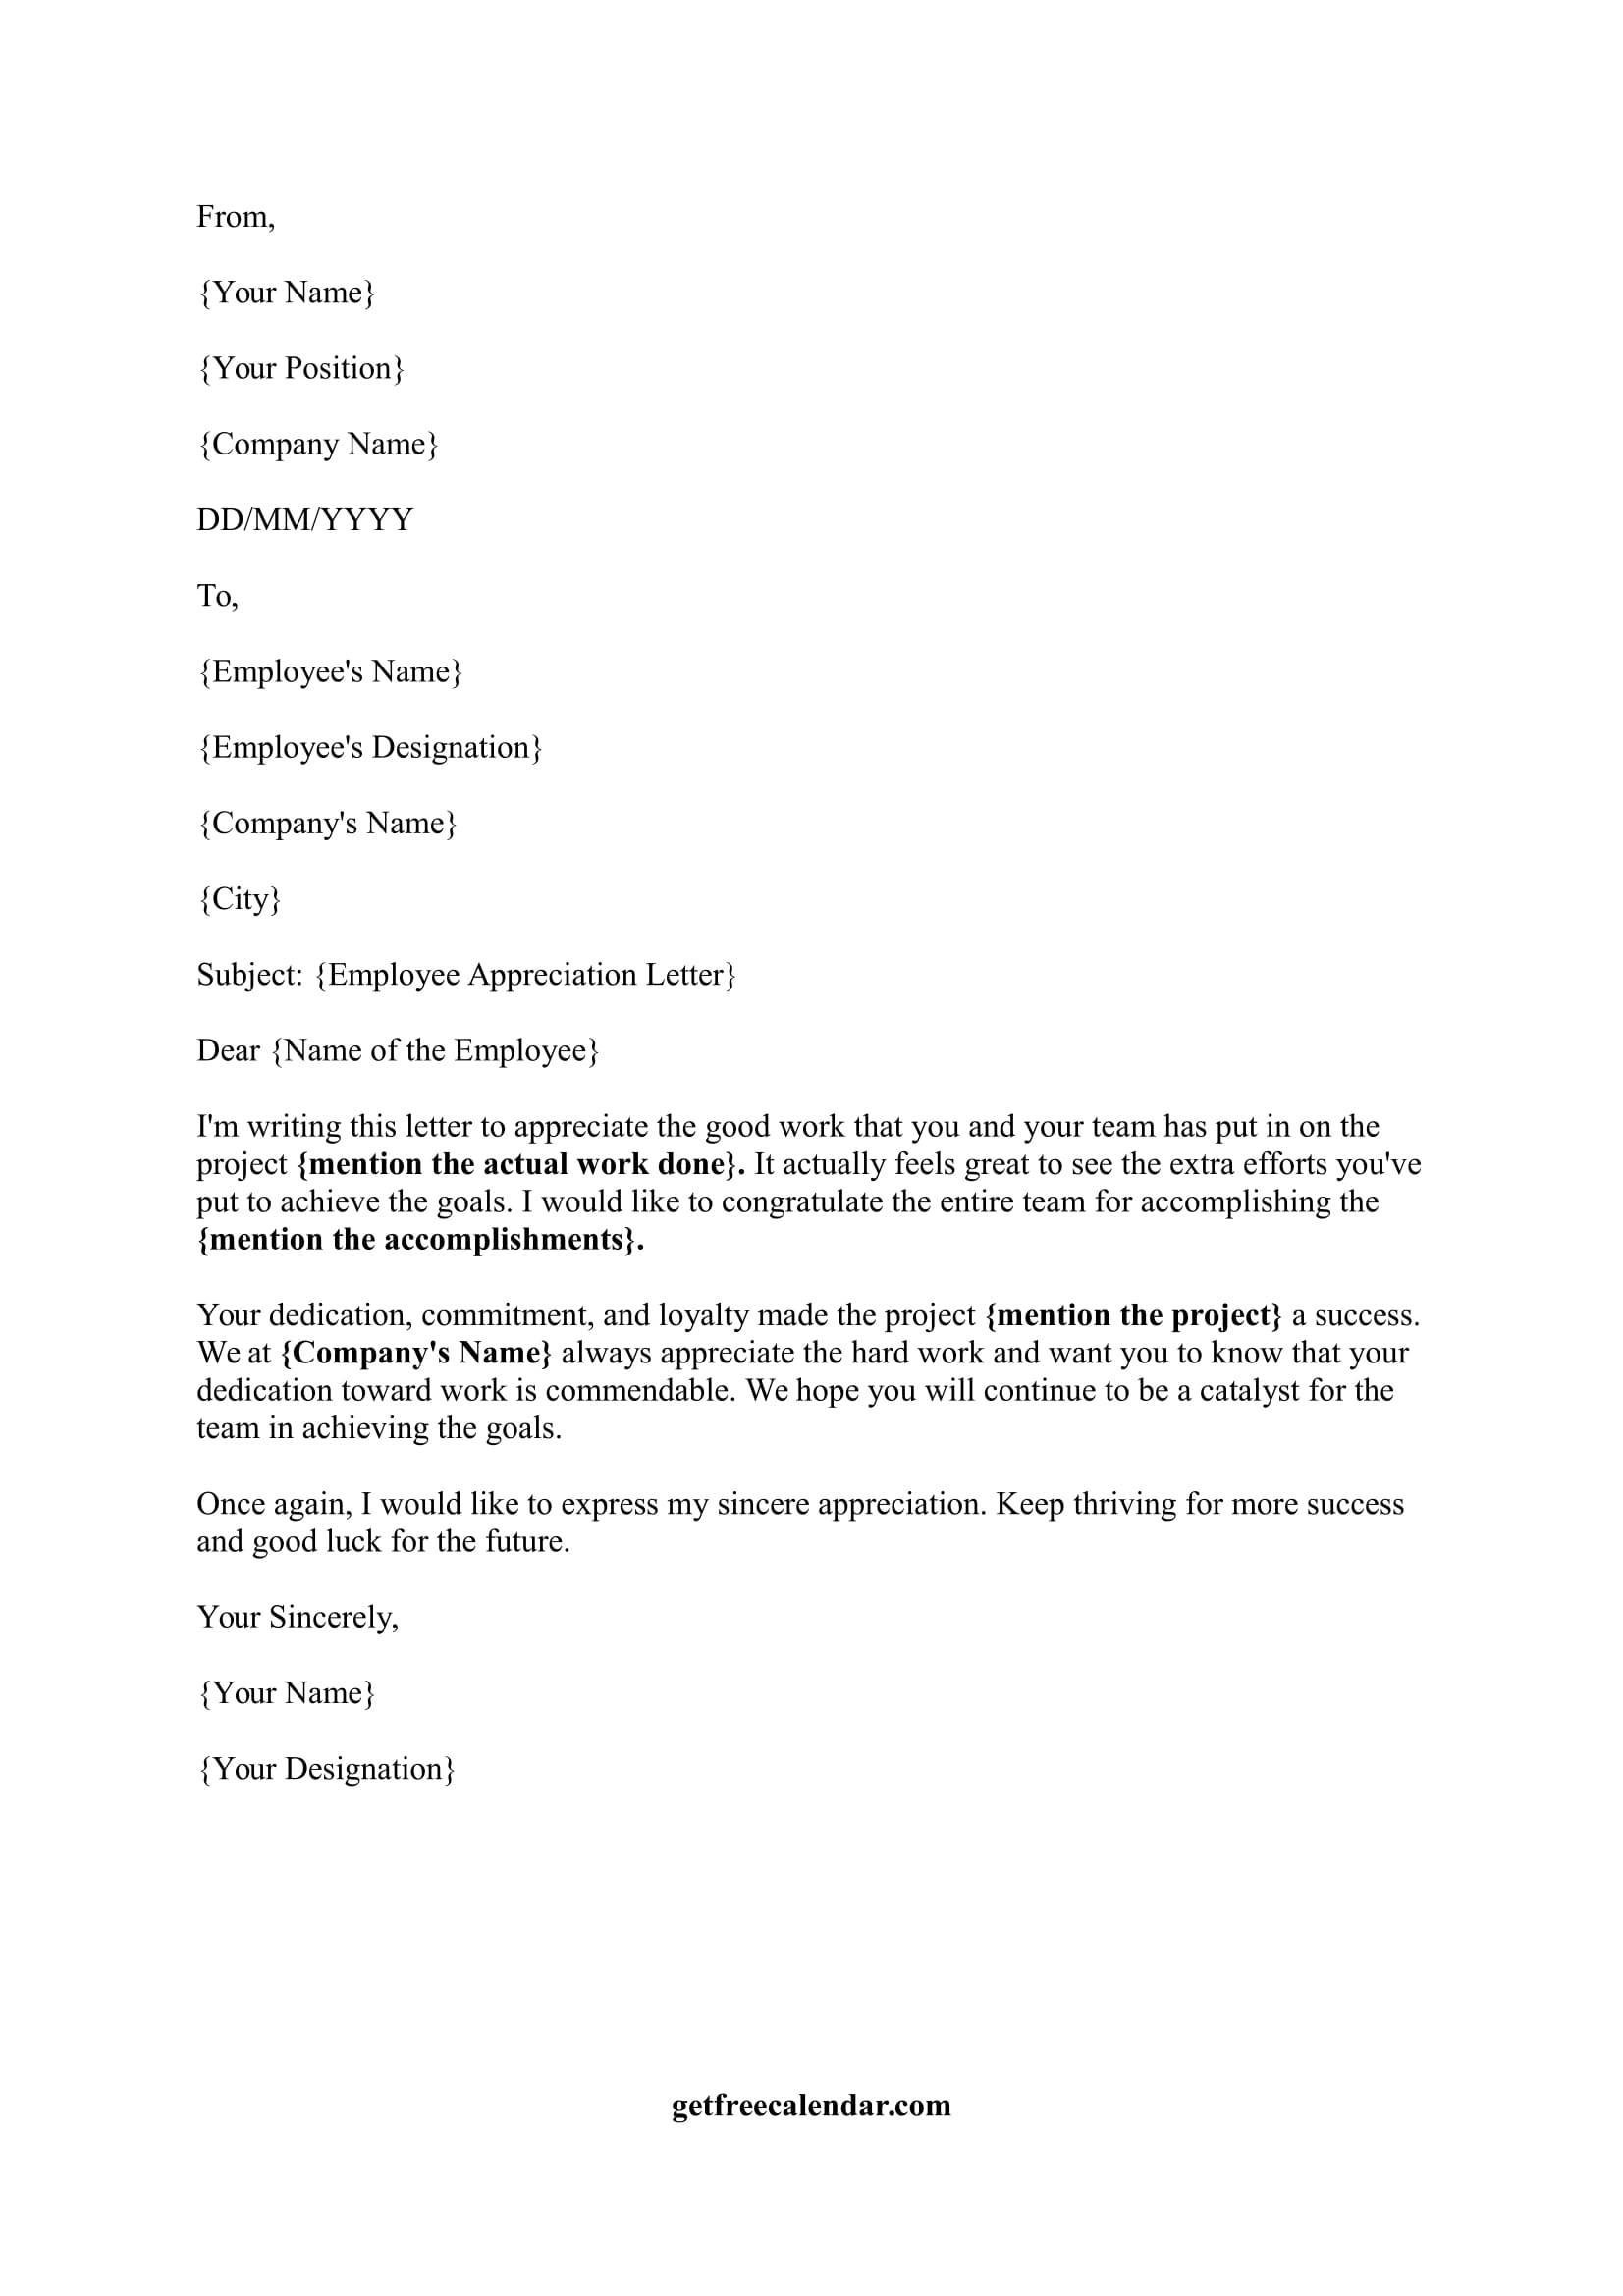 Sample Letter Of Appreciation To Employee from getfreecalendar.com